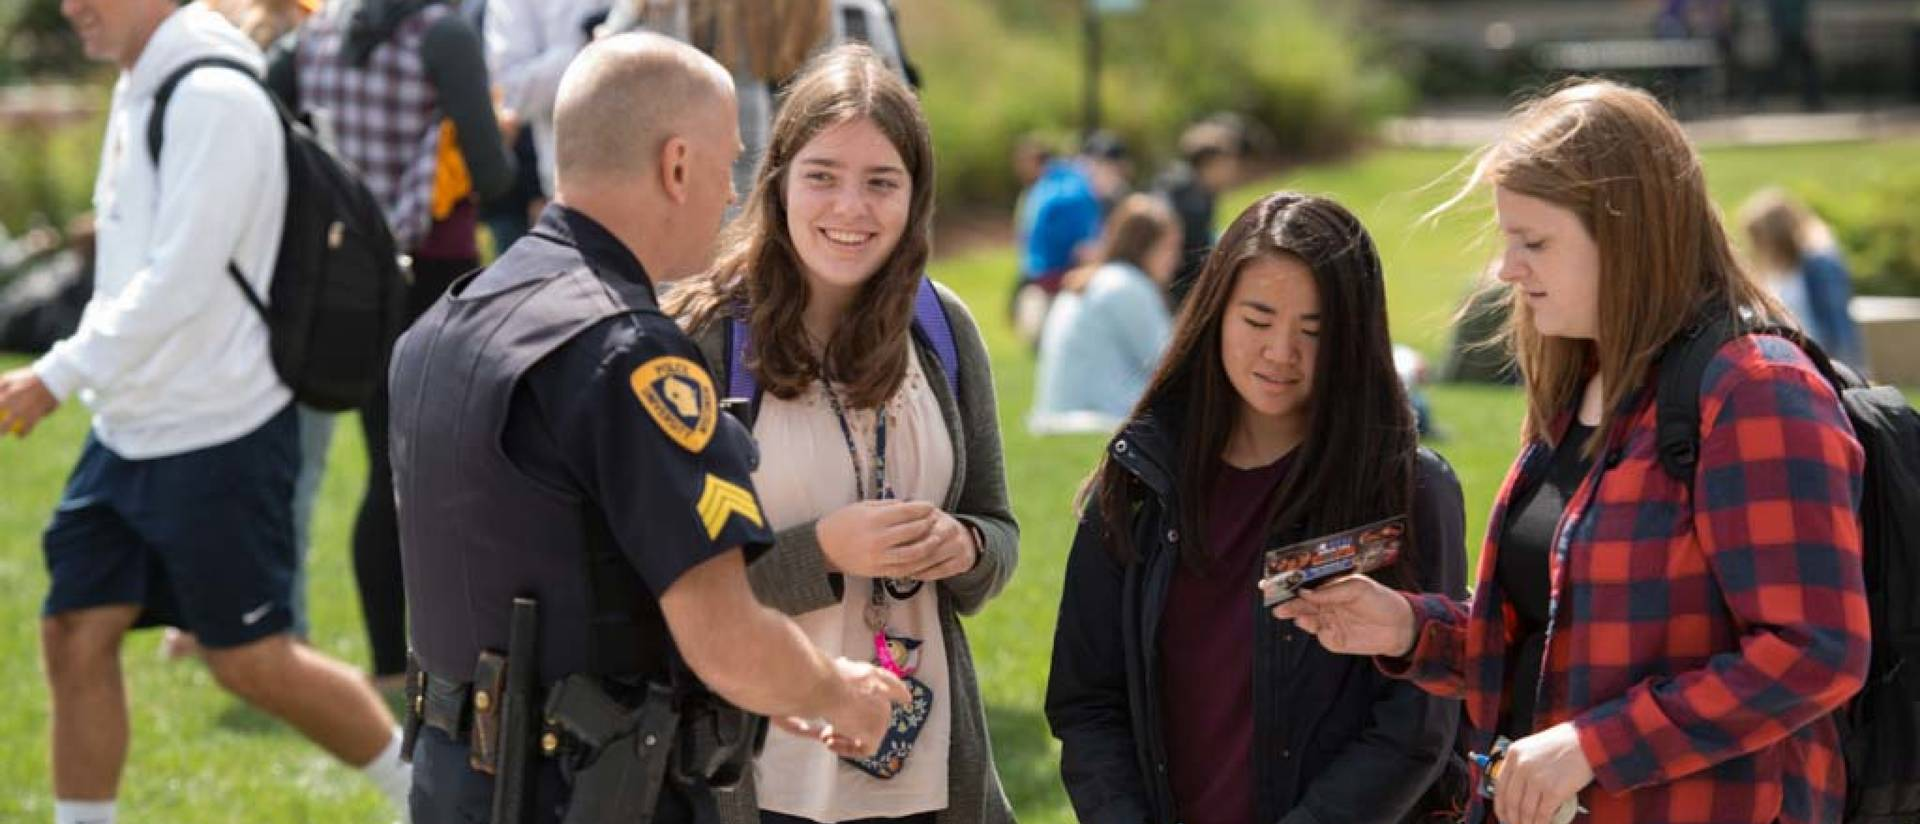 Police officer welcomes students at welcome week